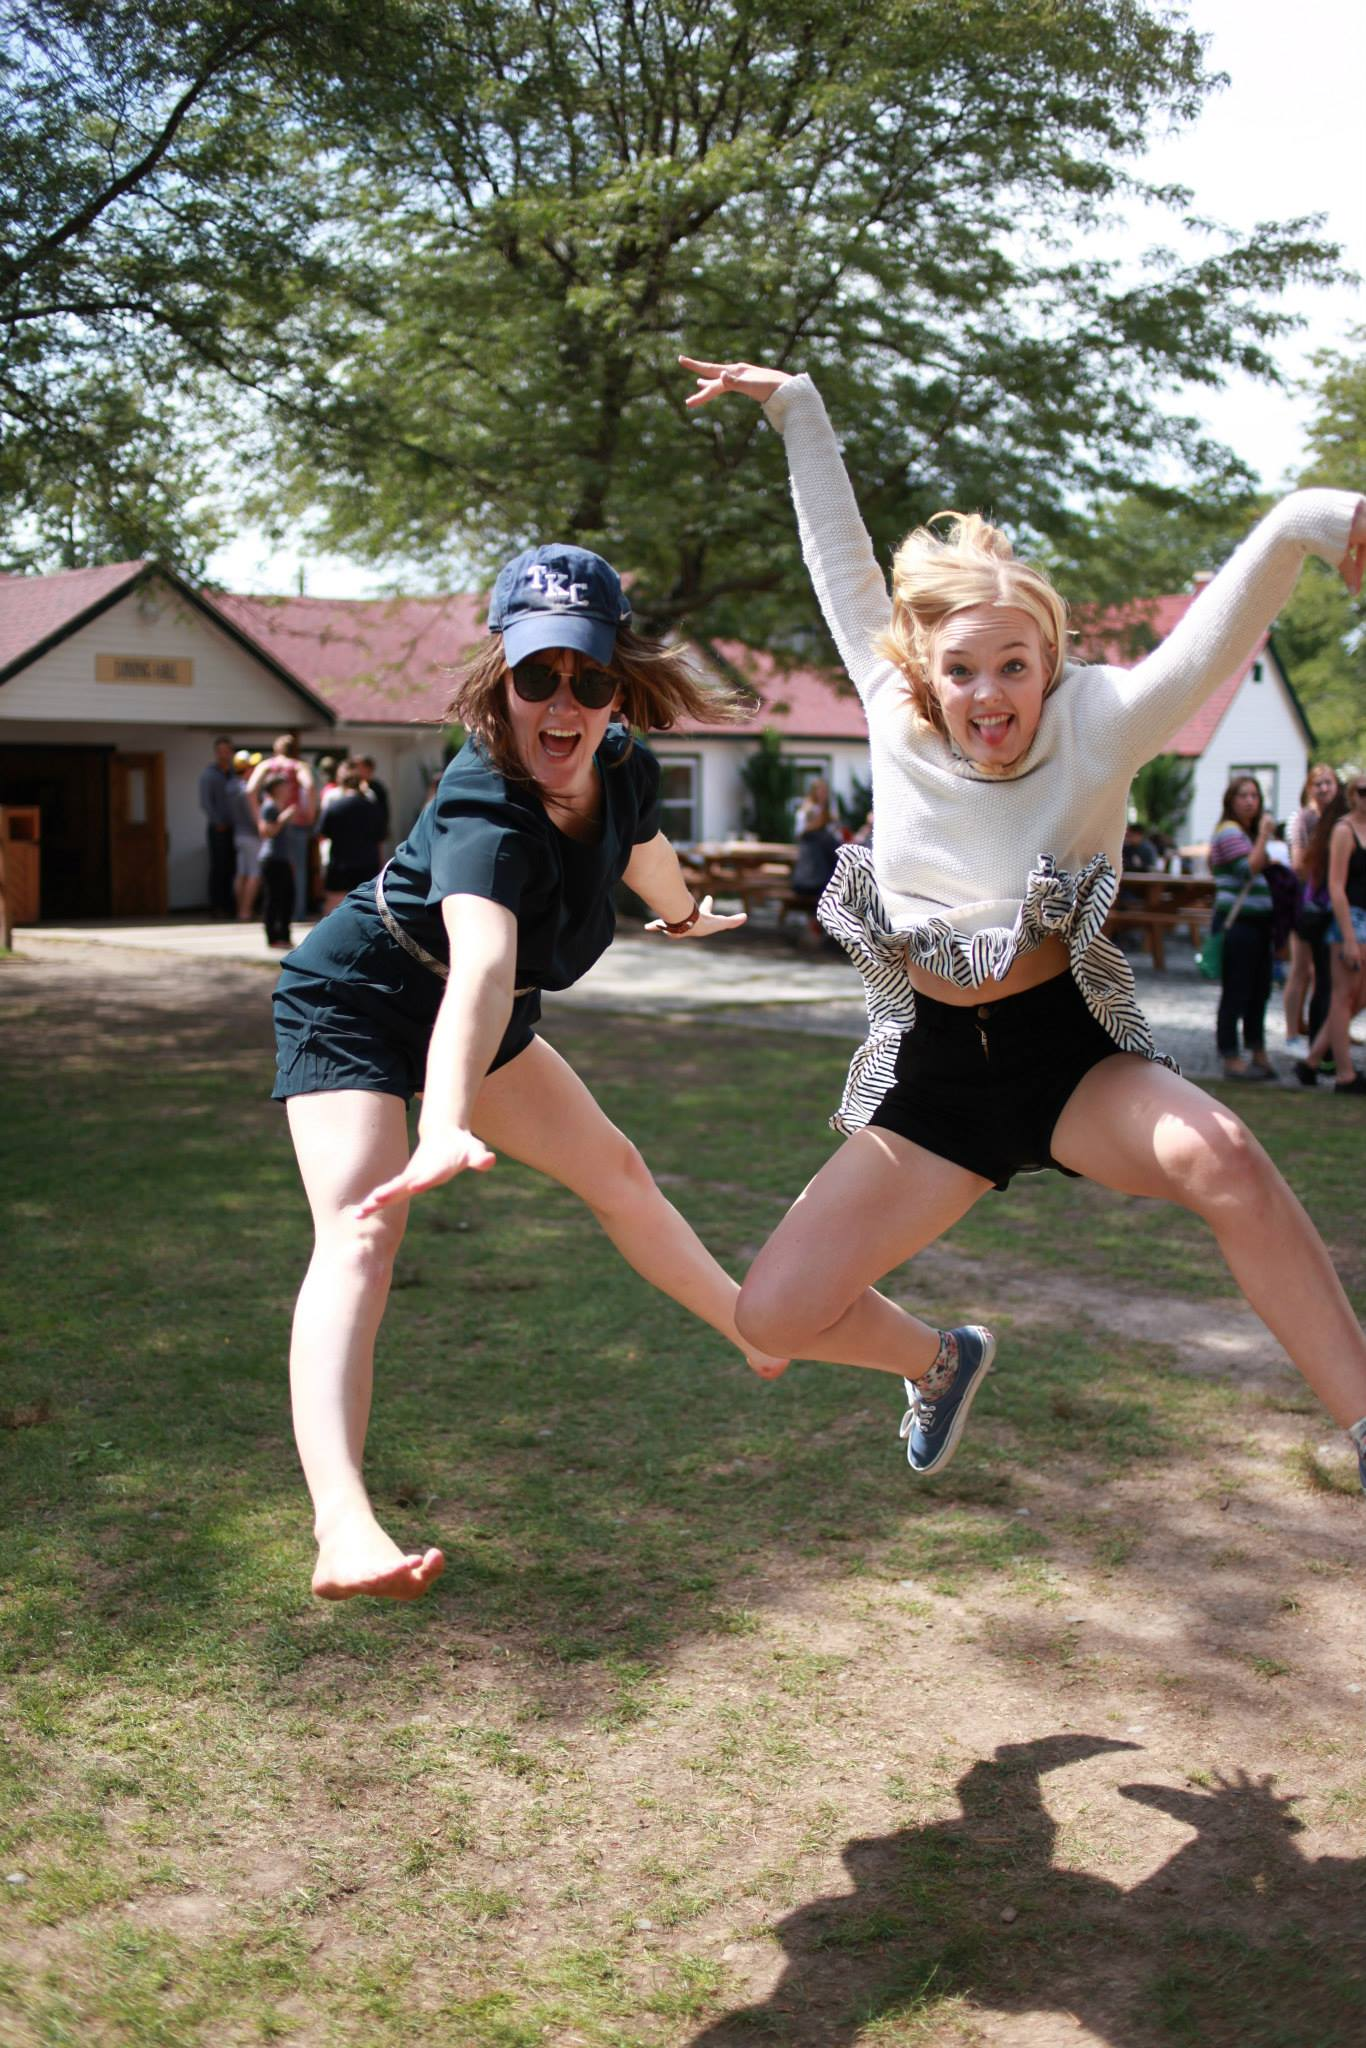 Lucinda Sweazey ('15) and Caley Goins ('14) represent the feelings of fall retreat. Photo by Elise Inman.